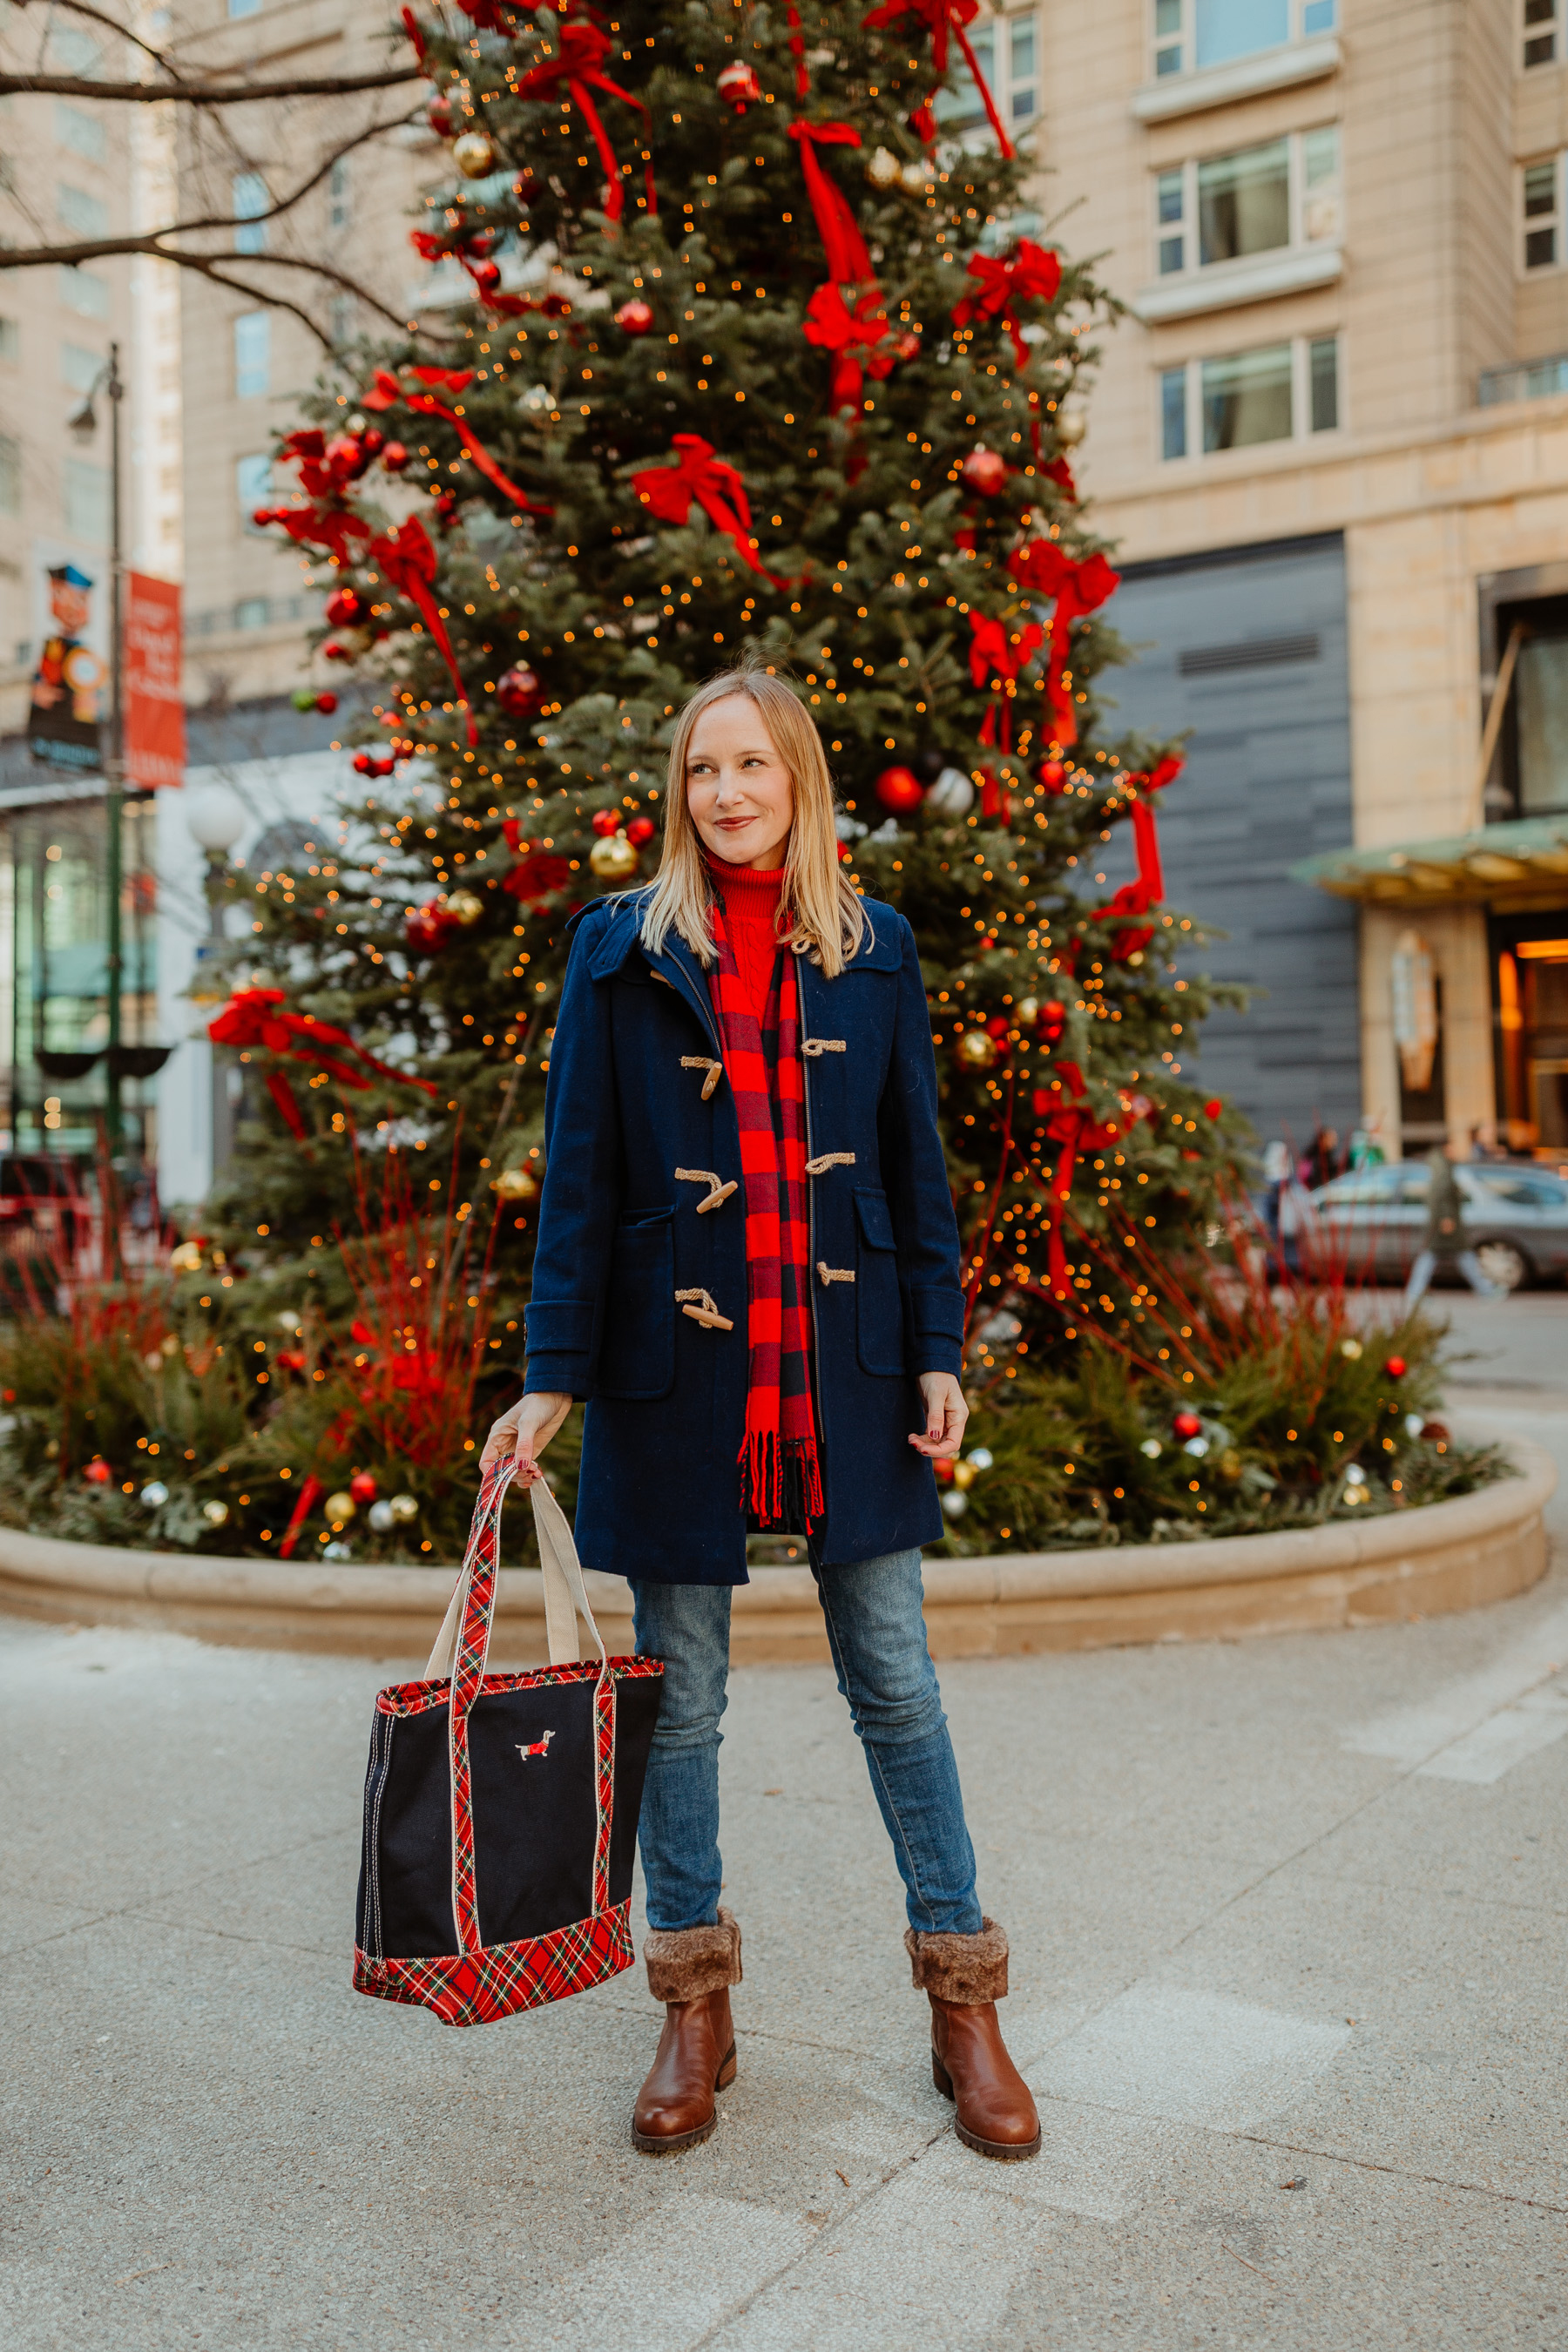 Navy Duffle Coat(On sale!)/ Cable-Knit Turtleneck Sweater / Fur Booties / Buffalo Plaid Scarf /Lands' End Plaid Dachshund Tote c/o /Skinny Jeans(I'm wearingthe maternity version, though.)